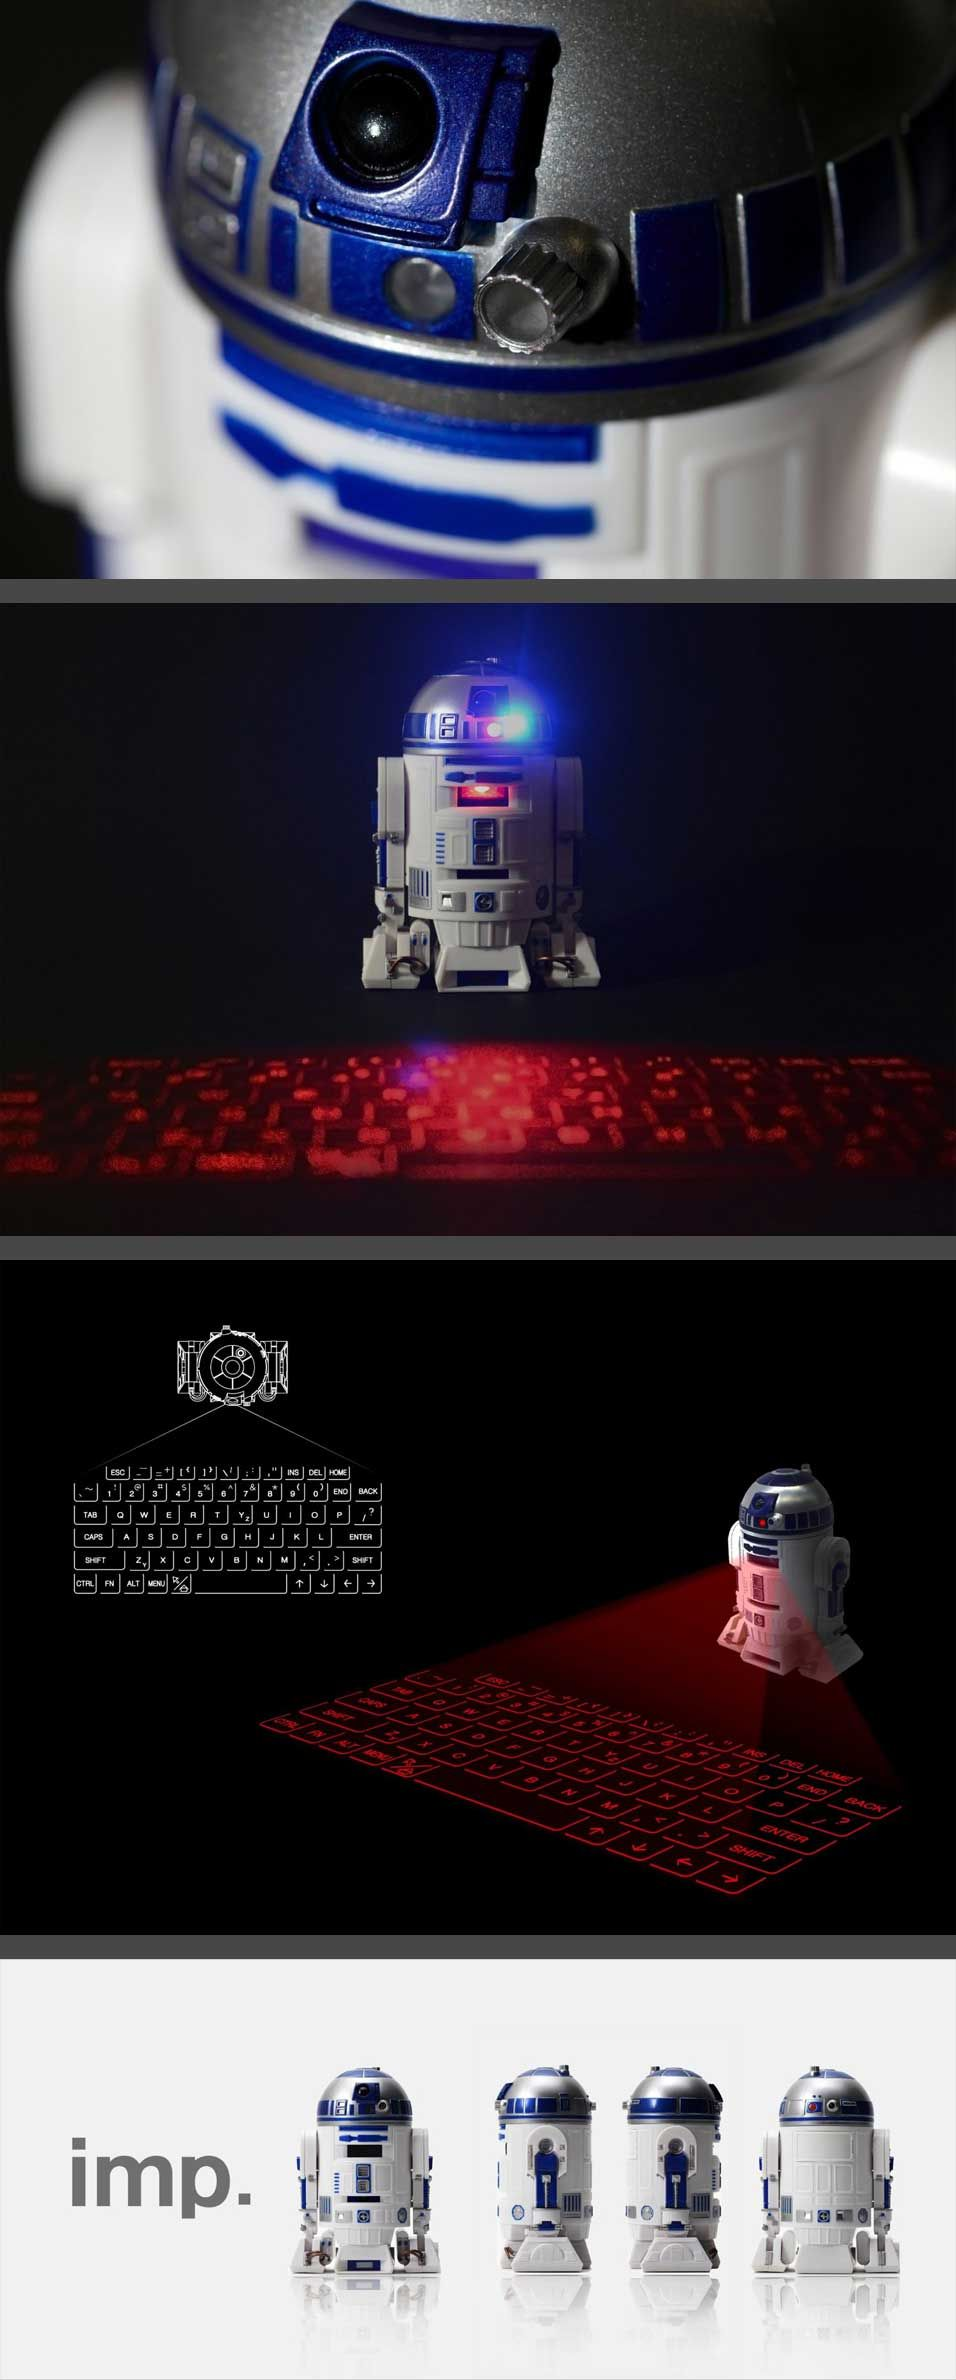 R2d2 Virtual Keyboard This R2d2 Unit Laser Projects A Full Qwerty